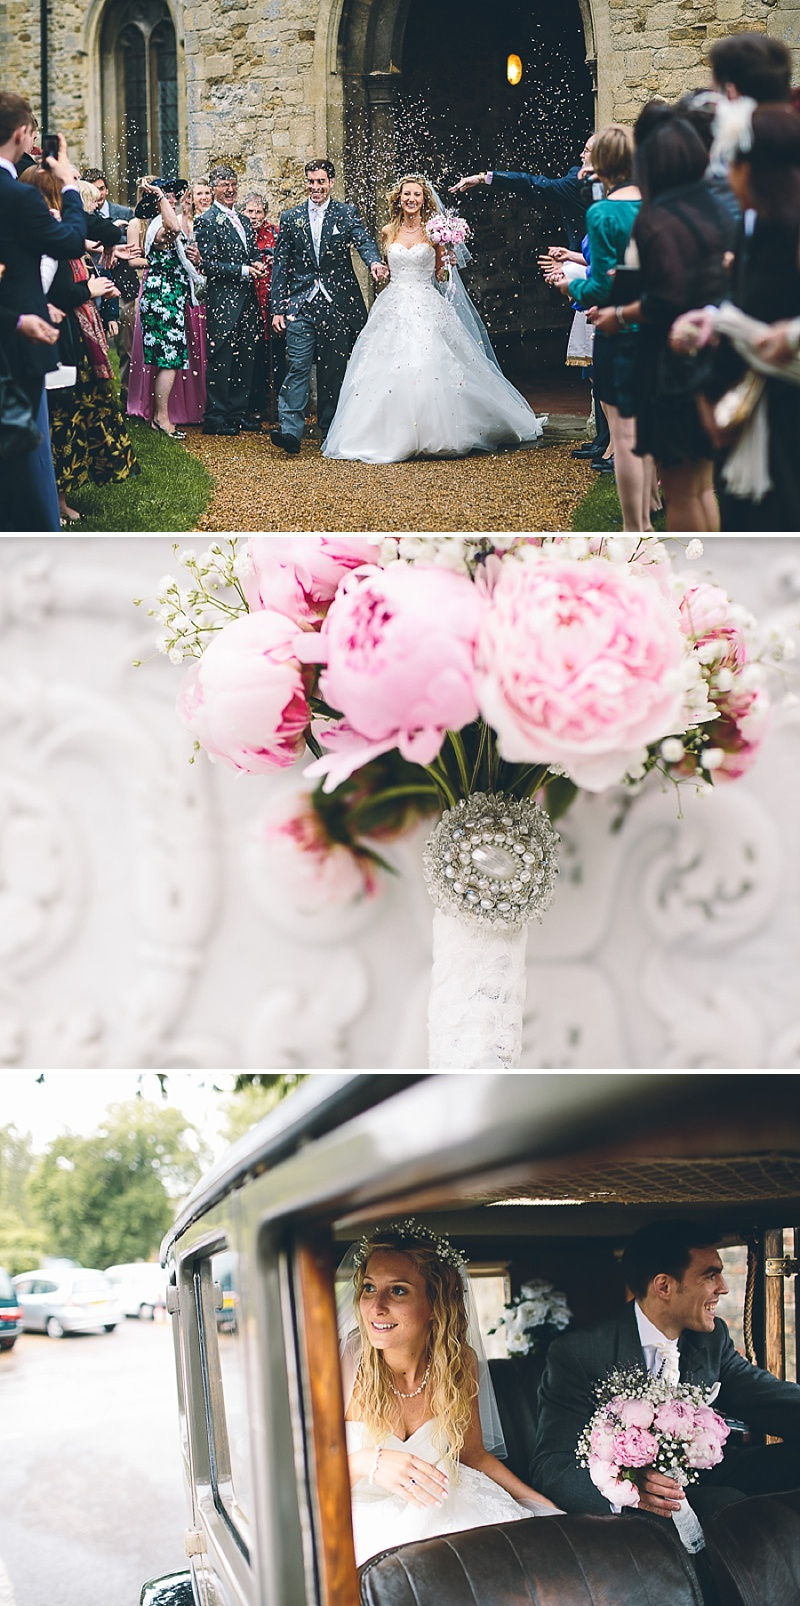 Church Wedding In Cambridge, Reception at Anstey Hall, Bride in Toscana by White One, With Dusky Pink Bridesmaids Gowns And Pink Peony Bouquet, Images by Albert Palmer Photography_0007